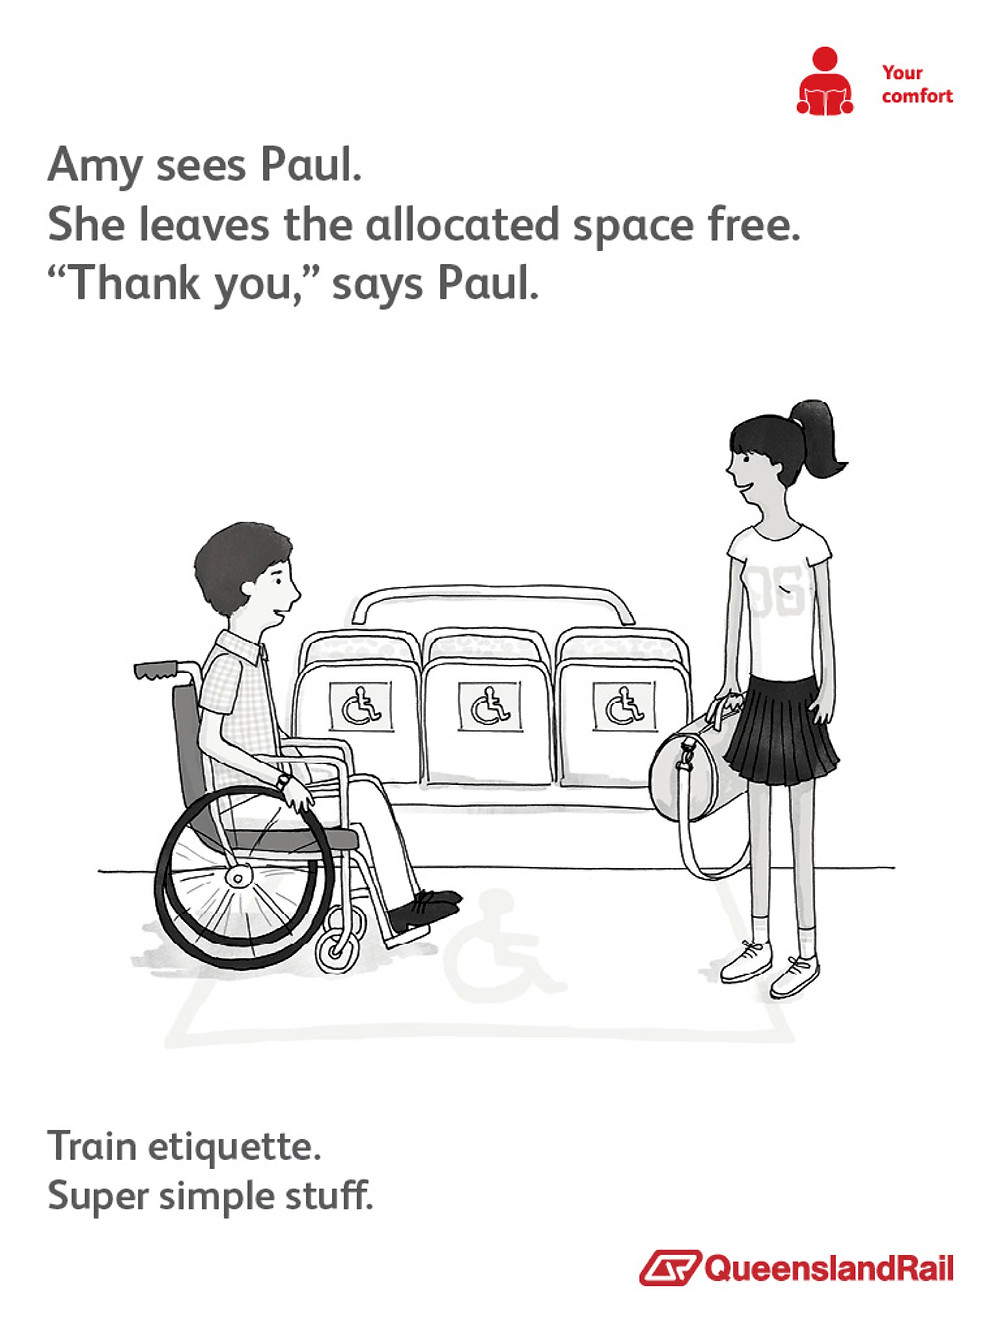 Train etiquette poster, Amy doesn't sit in designated wheelchair seat